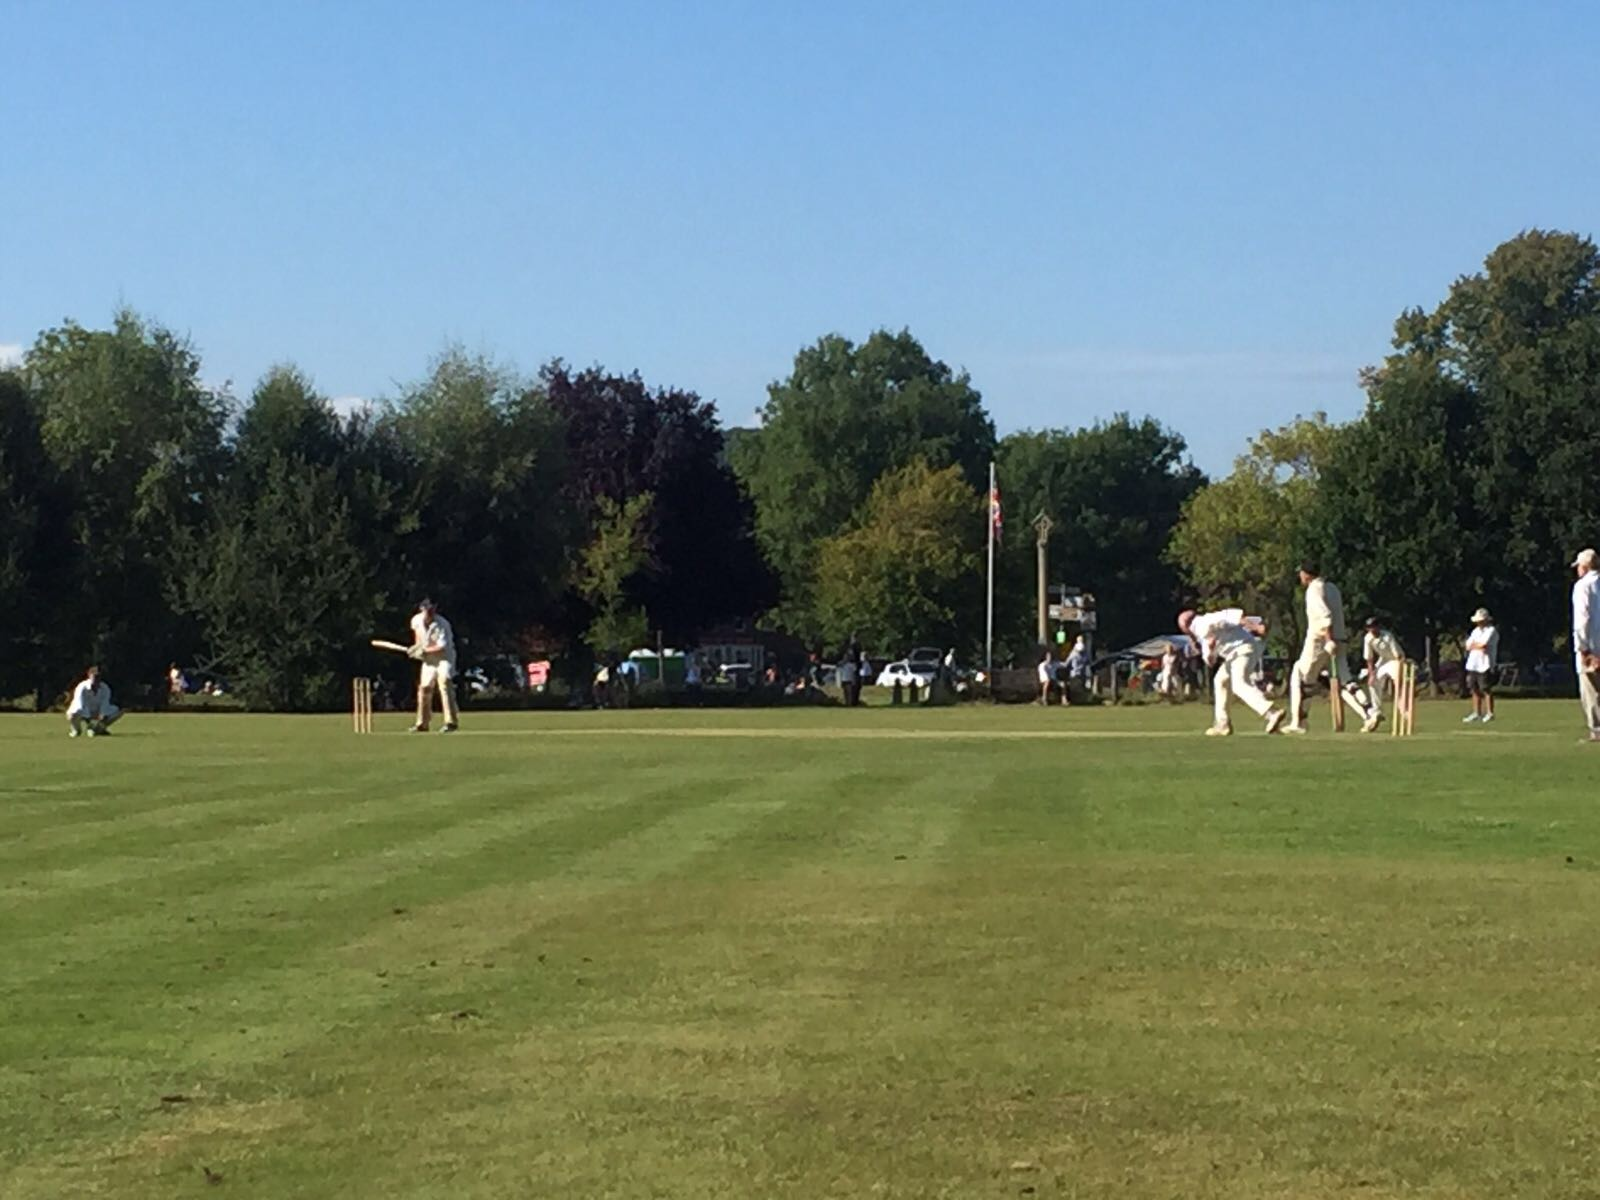 C le D' at the crease...